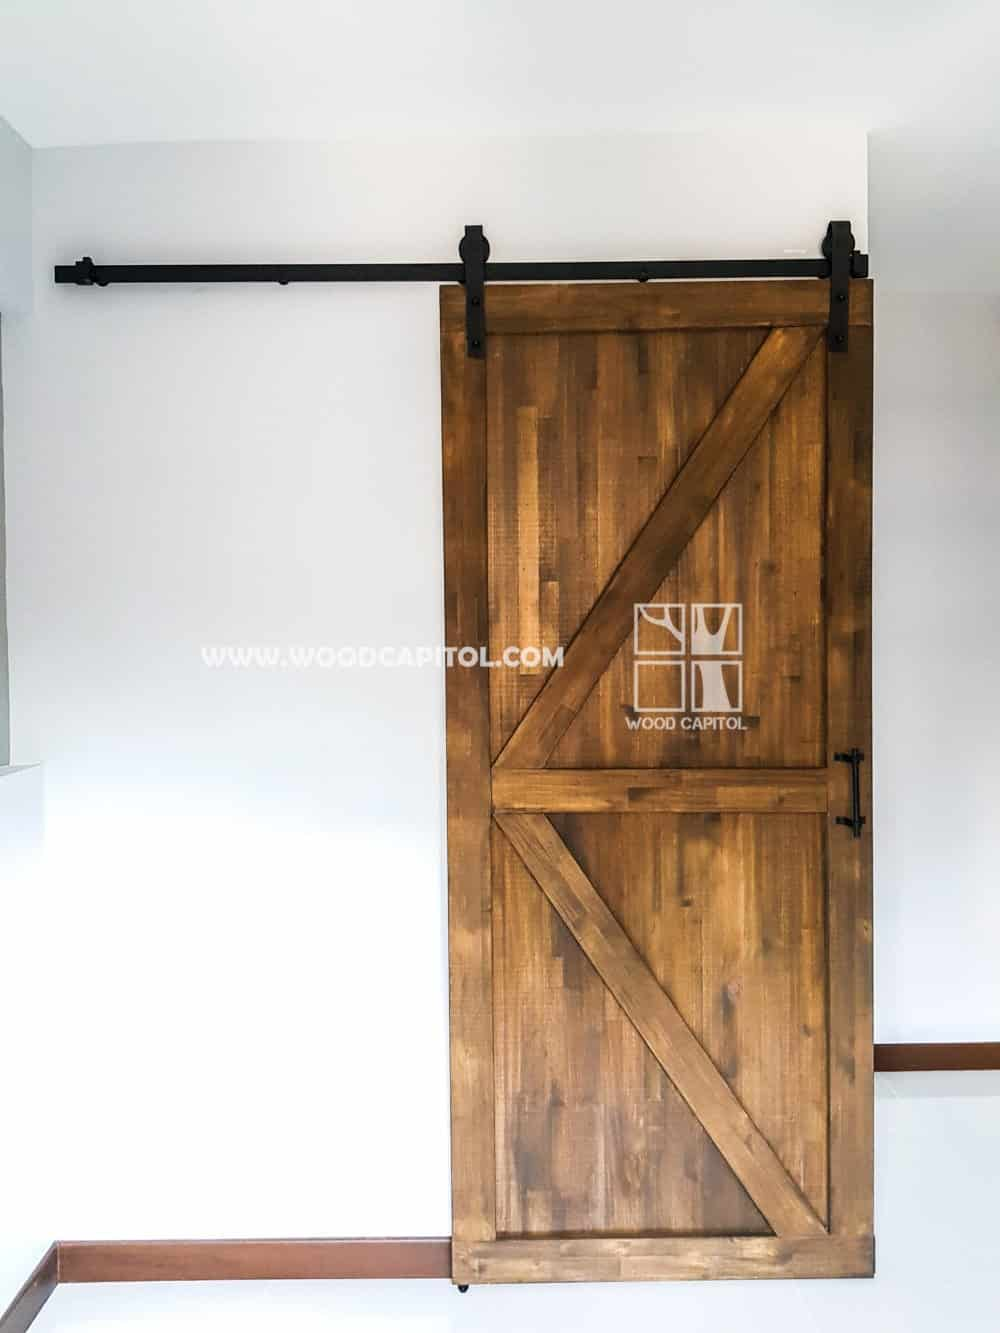 Wood Capitol Rustic Door